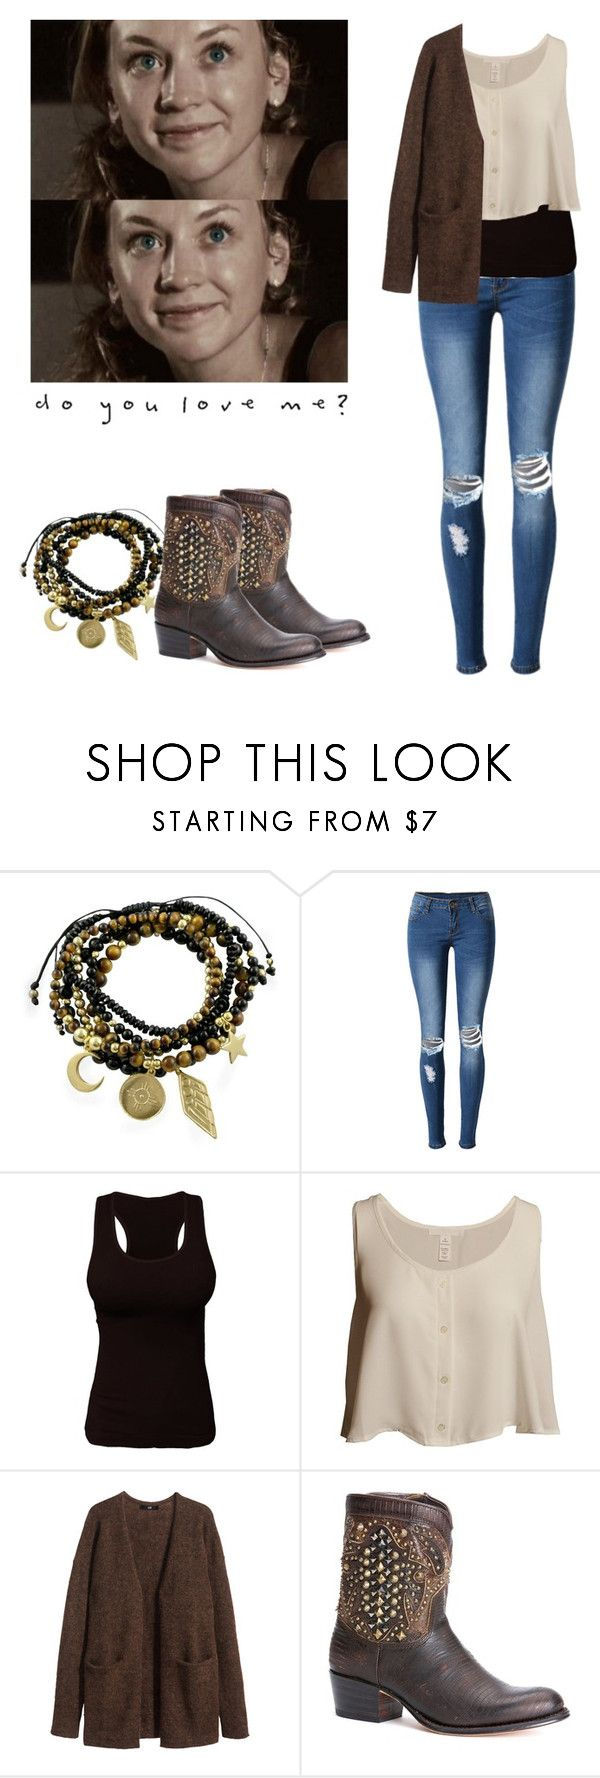 """""""Beth Greene outfit for chilly weather - twd / the walkig dead"""" by shadyannon ❤ liked on Polyvore featuring Essentia By Love Lily Rose, WithChic, H&M and Frye"""